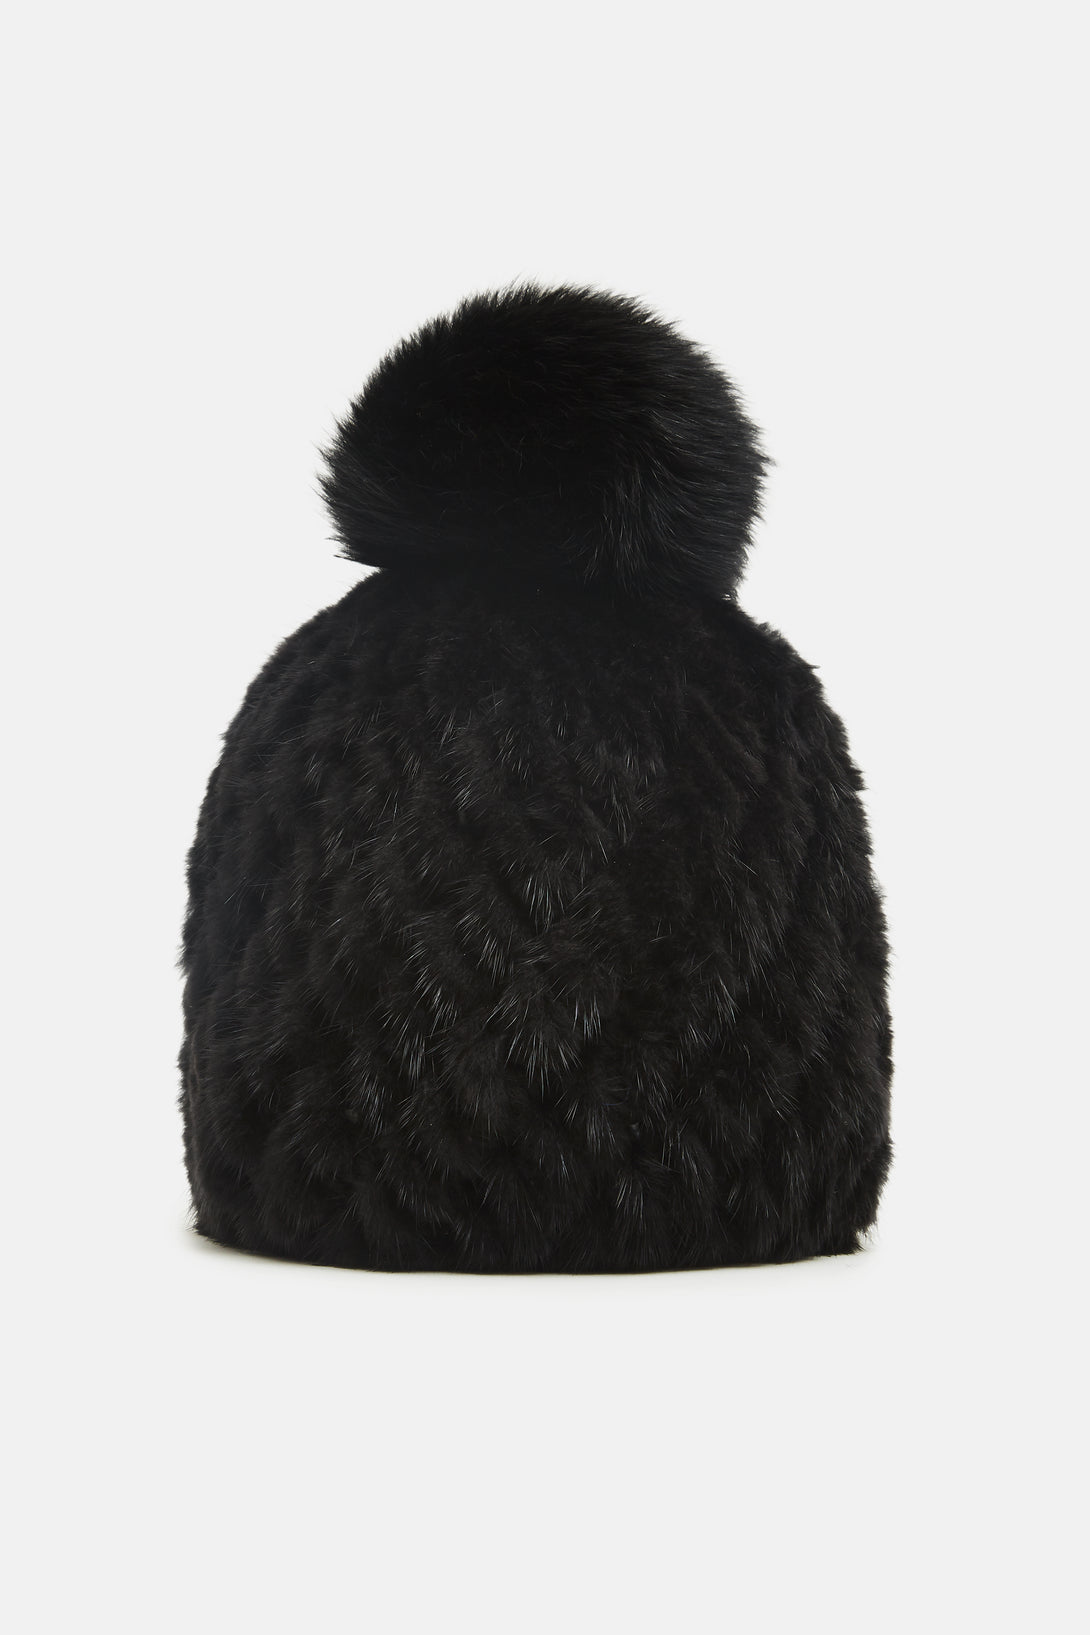 Knitted Mink Beanie - Black